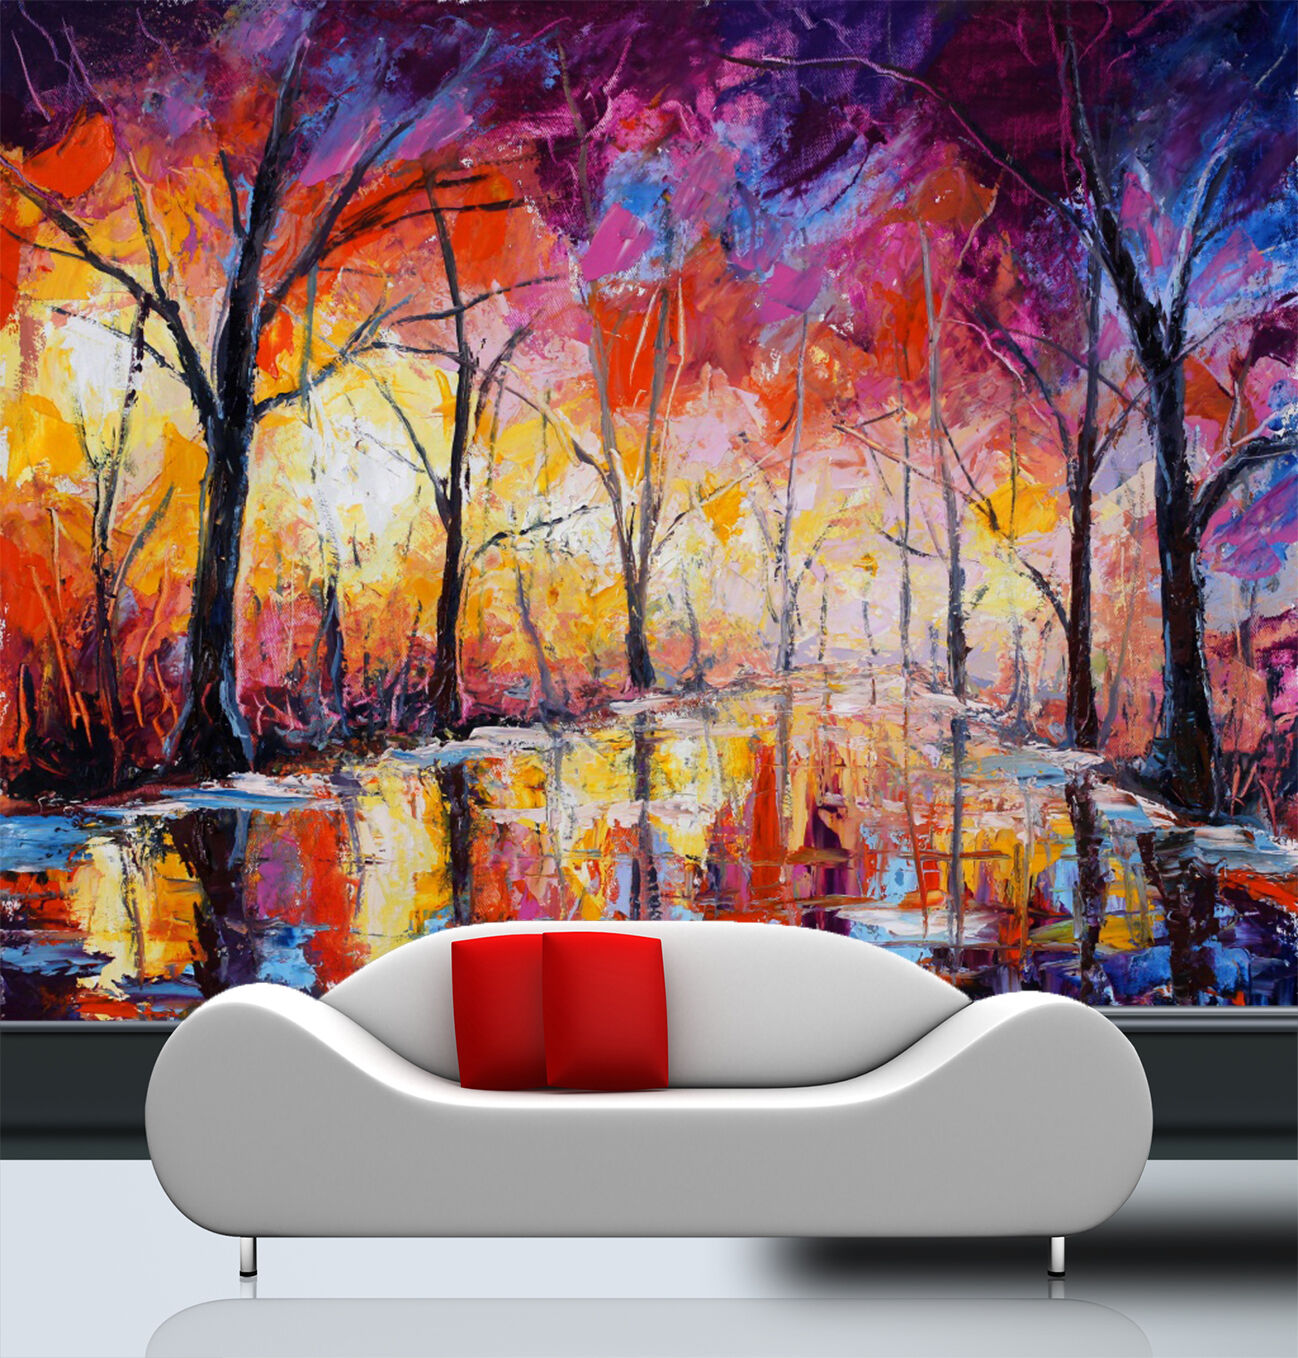 3D Hand Painting Forest 7023 Wall Paper Wall Print Decal Wall AJ WALLPAPER CA